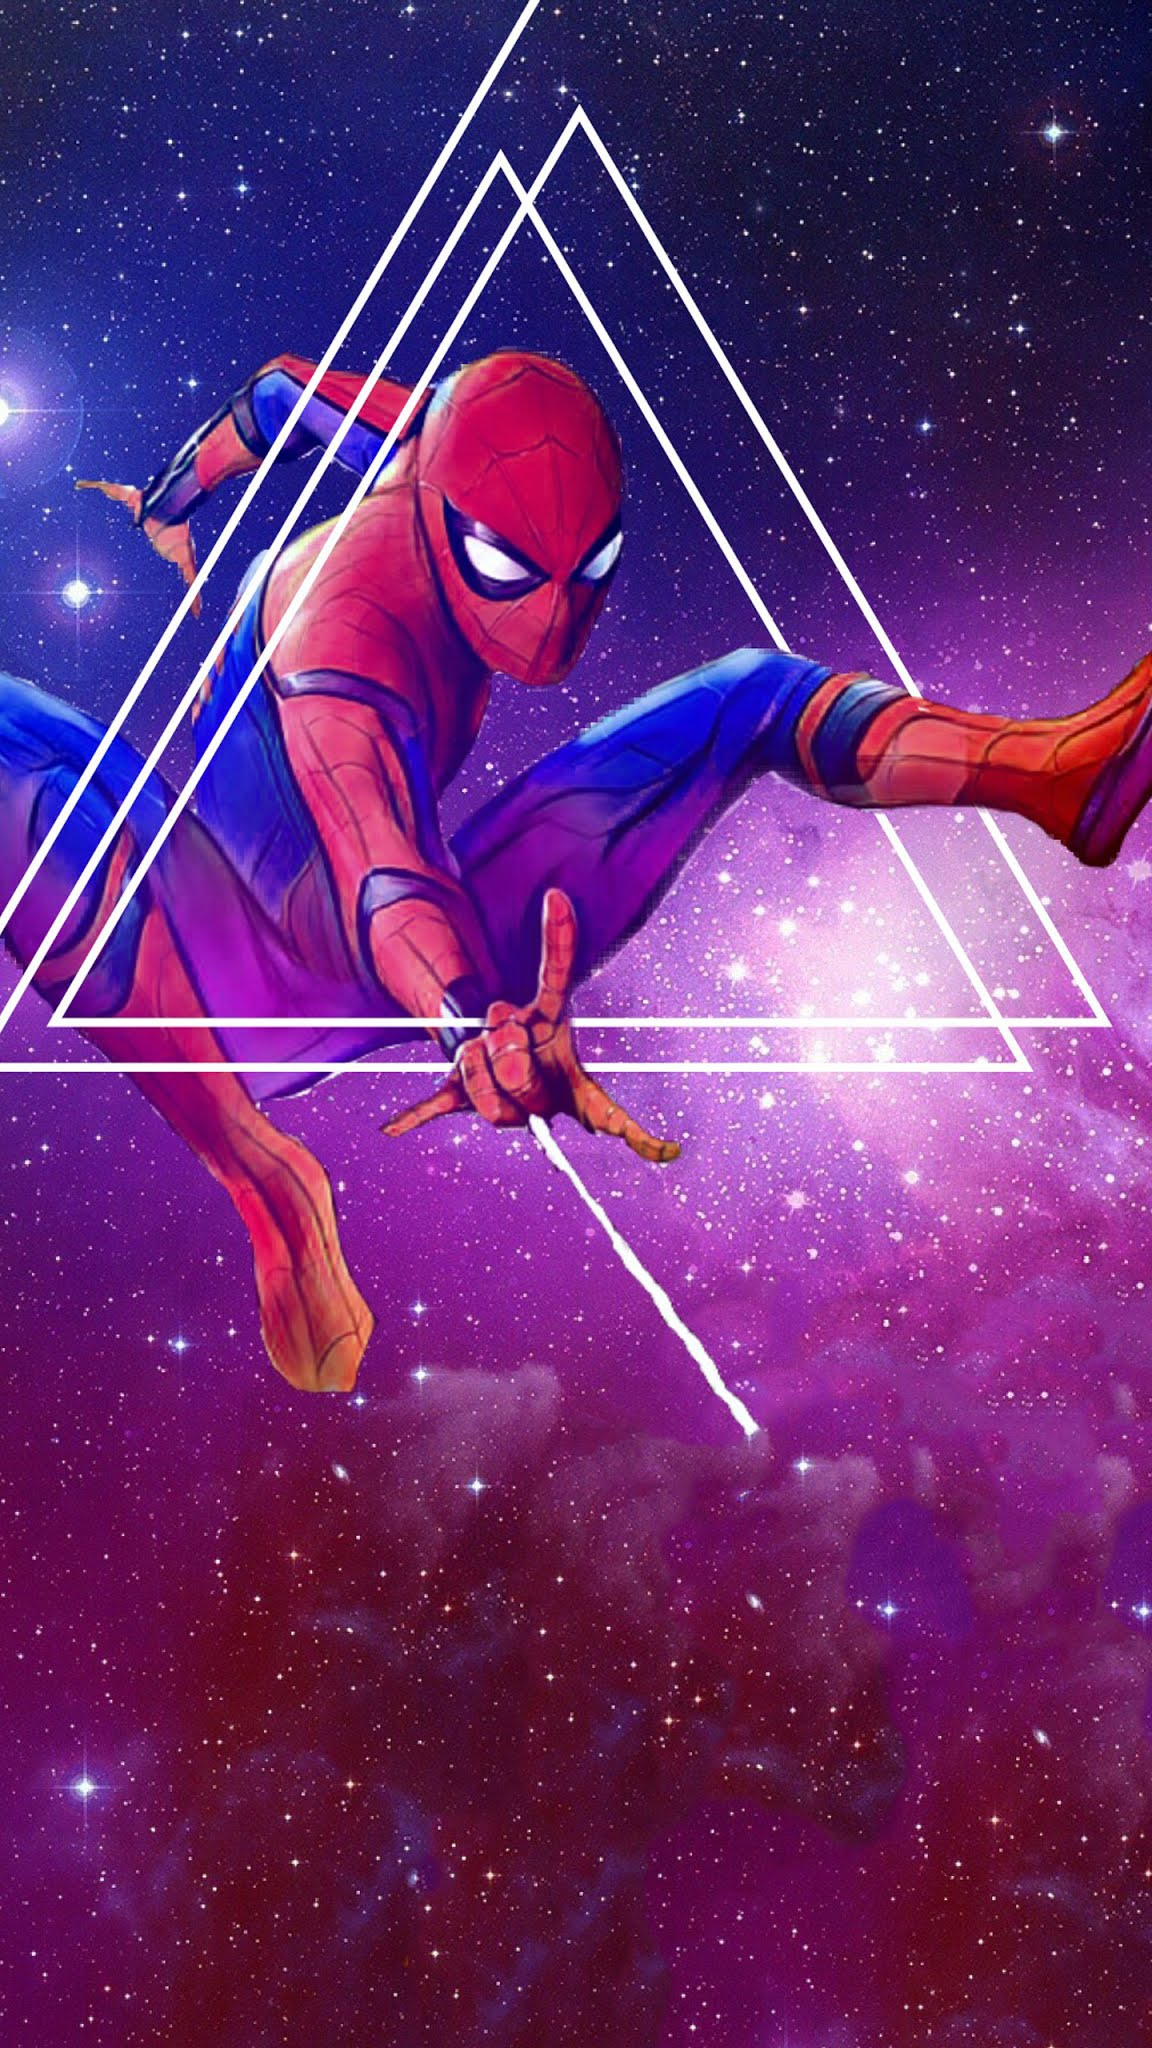 Spiderman avengers infinity war artwork mobile wallpaper